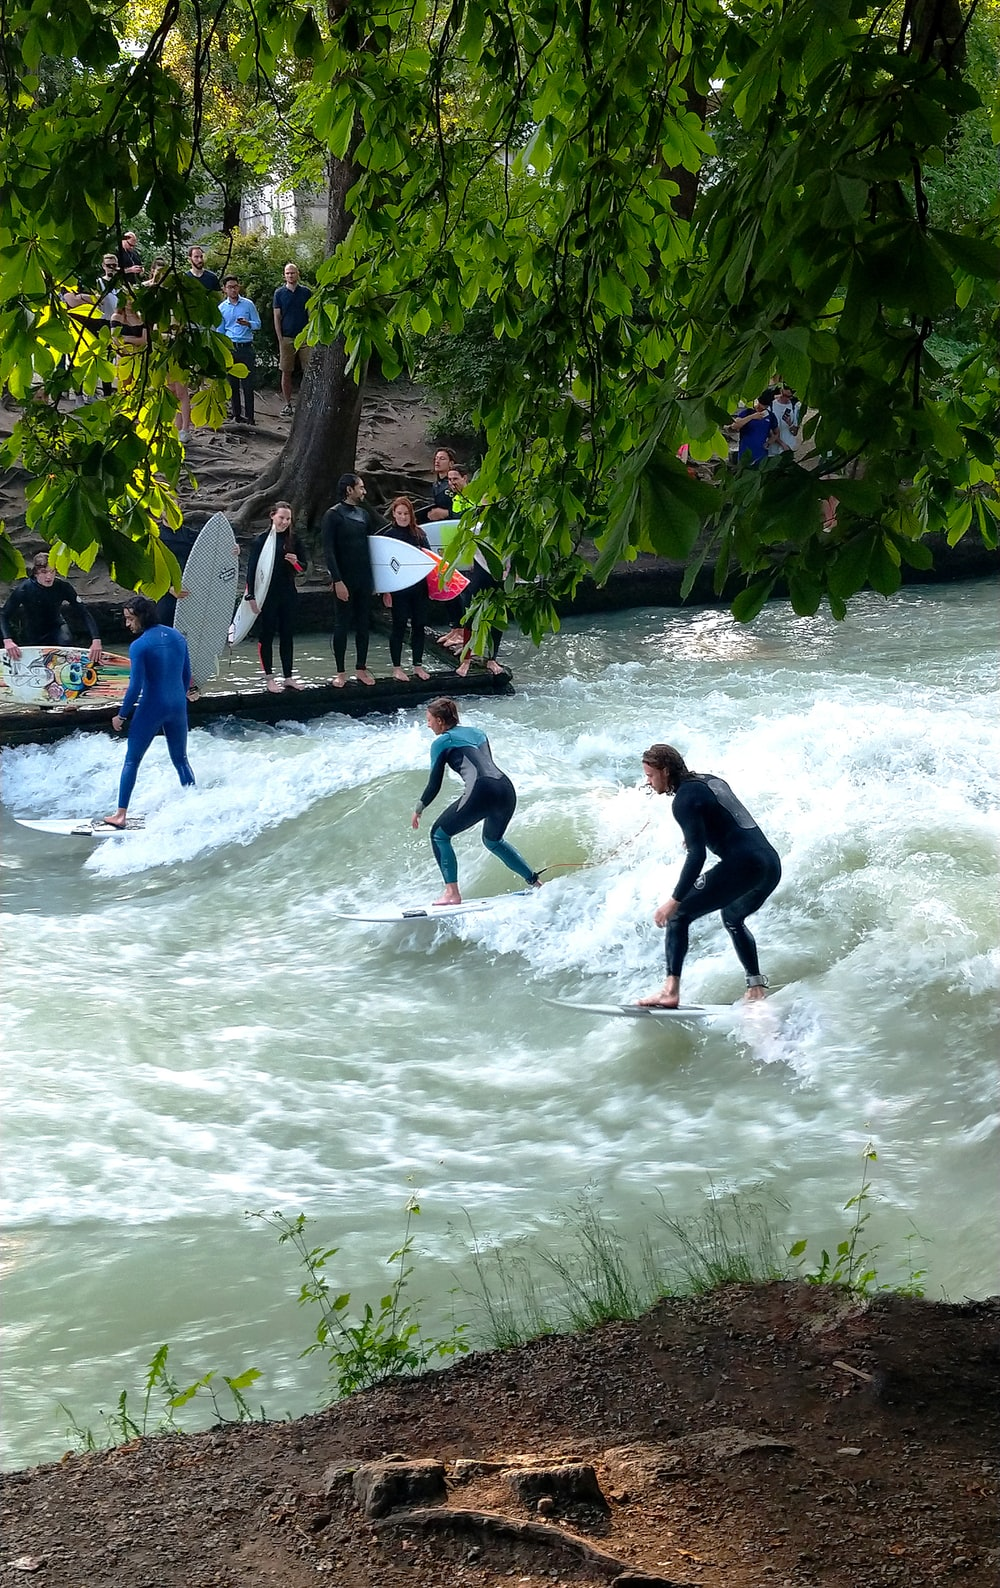 three person surfing in water during daytime